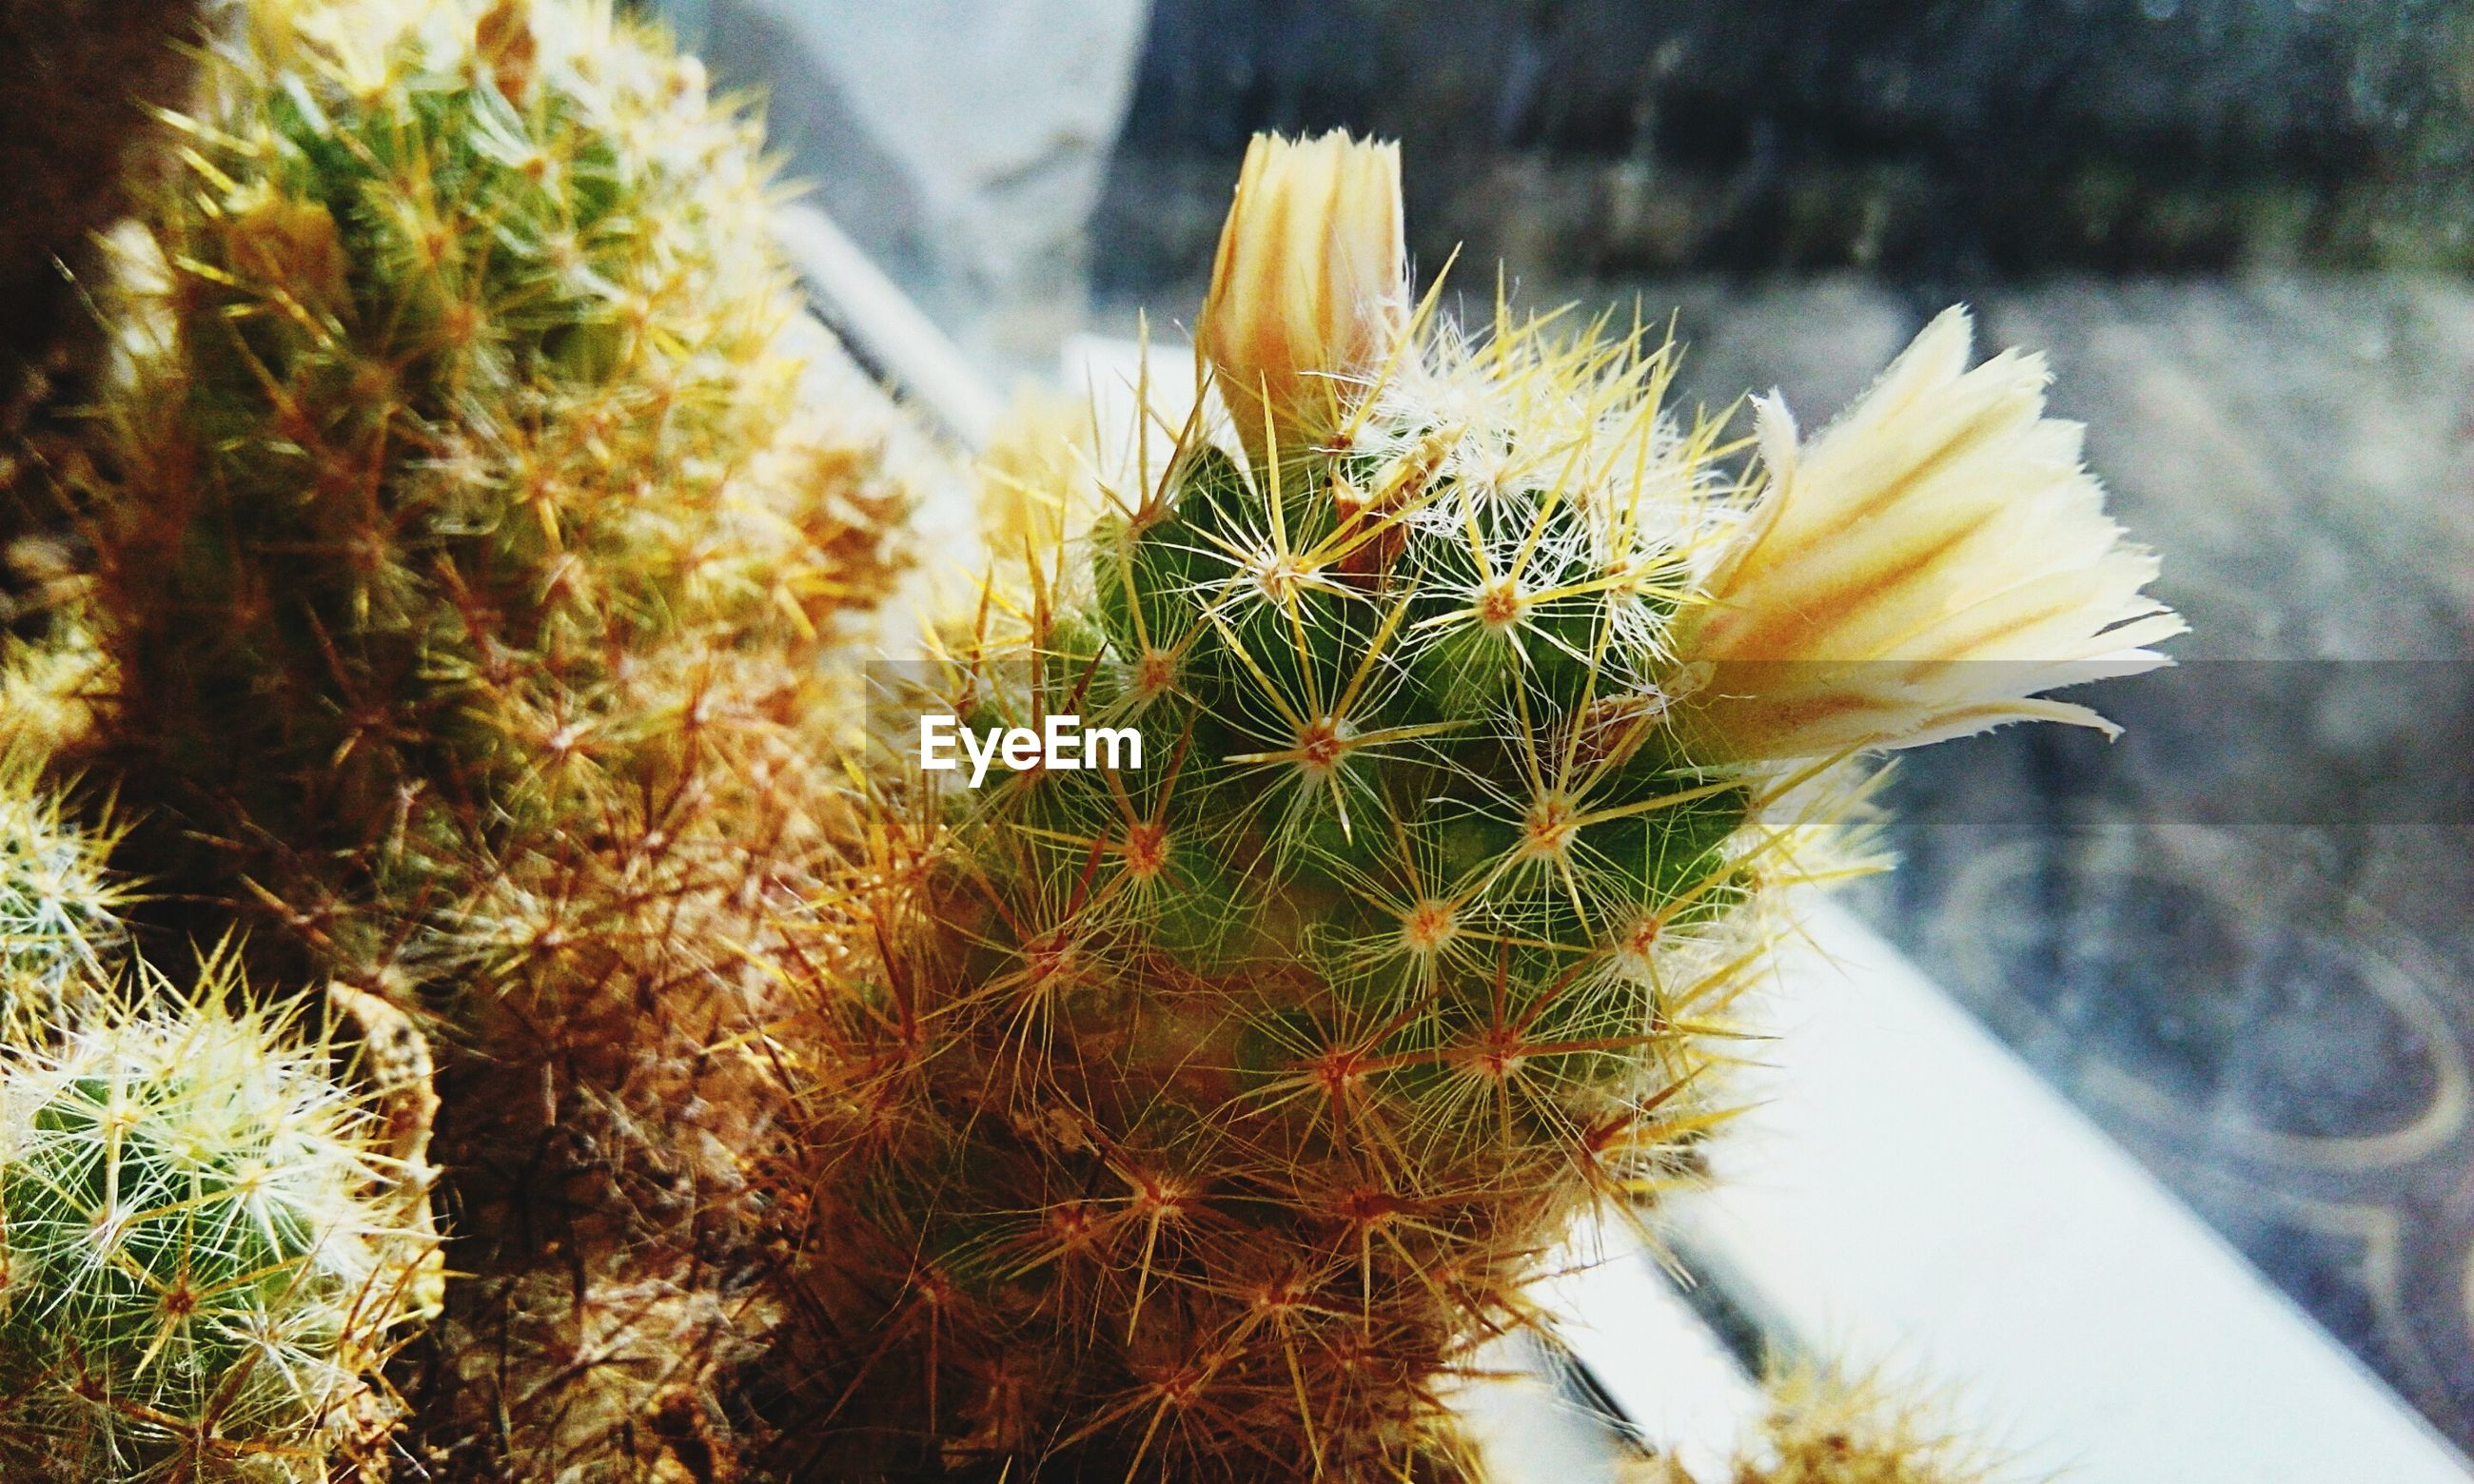 plant, succulent plant, cactus, flowering plant, flower, growth, close-up, beauty in nature, nature, freshness, thorn, focus on foreground, fragility, no people, day, spiked, vulnerability, flower head, inflorescence, potted plant, outdoors, spiky